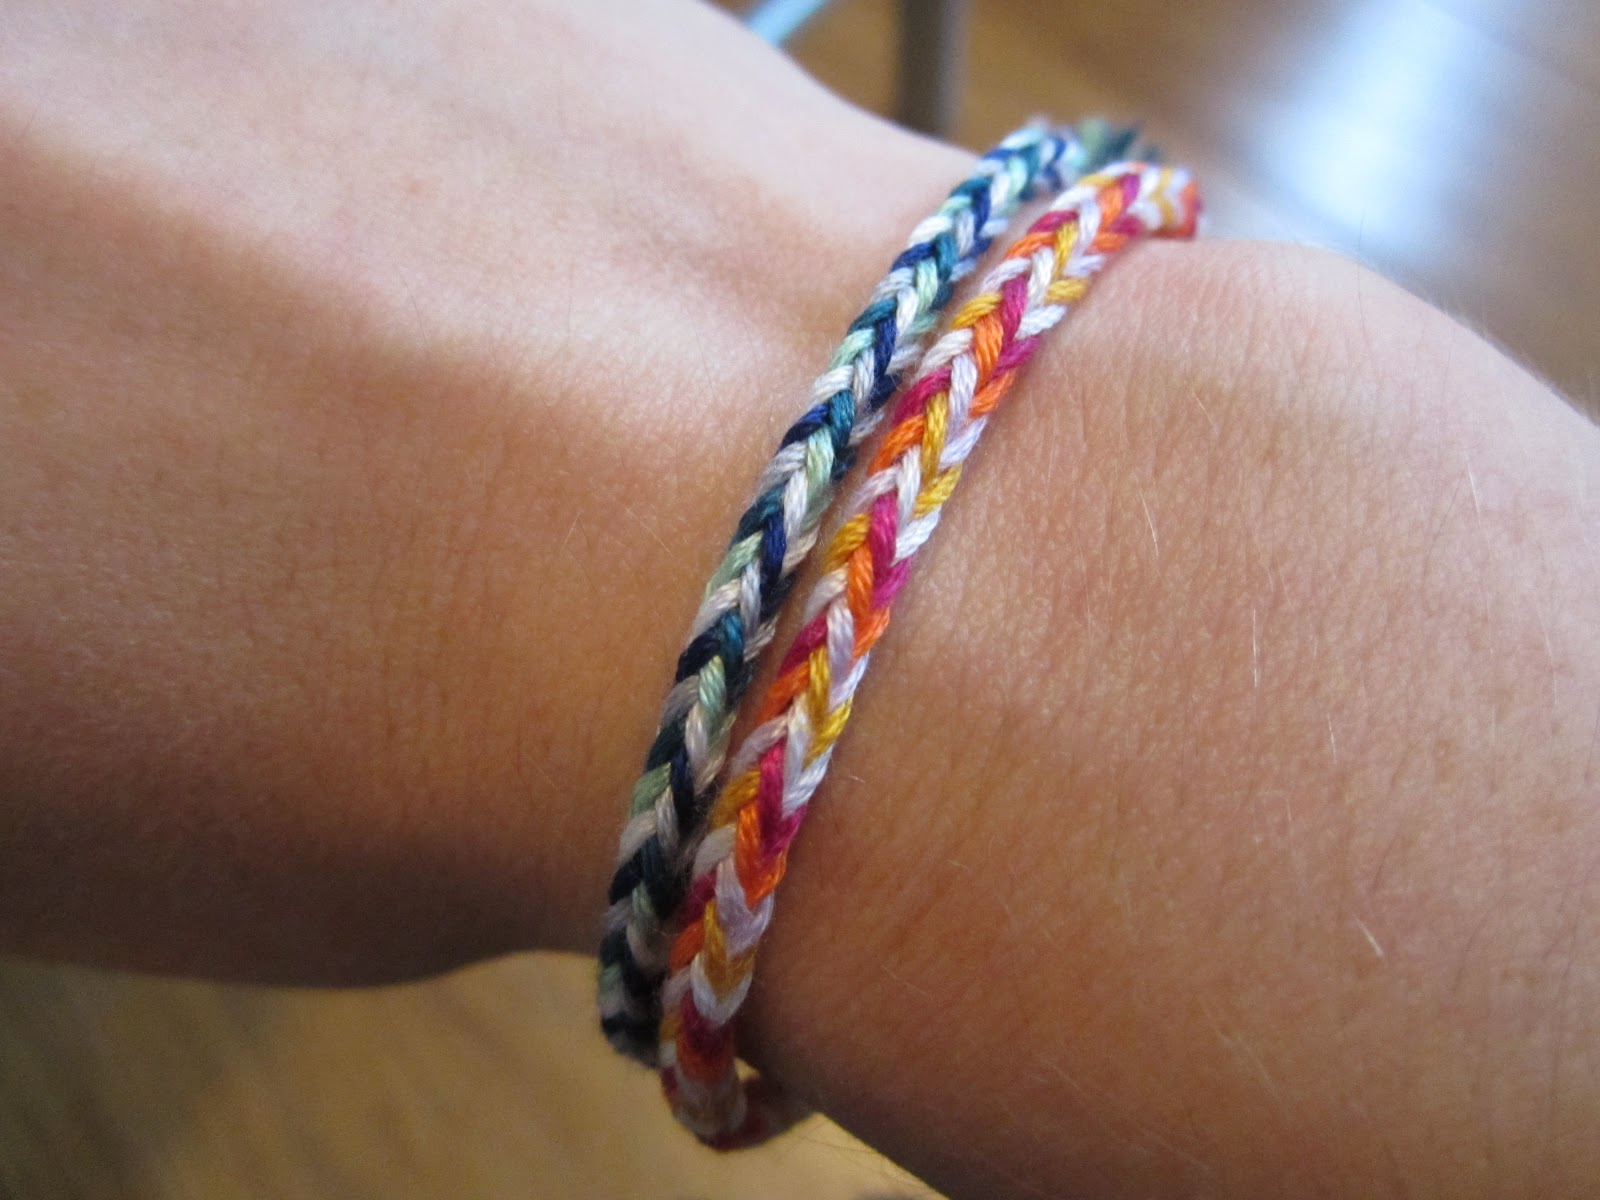 zag fullxfull friendship bracelets made zig intertwined to bracelet embroidery kaliste il products massive macrame order